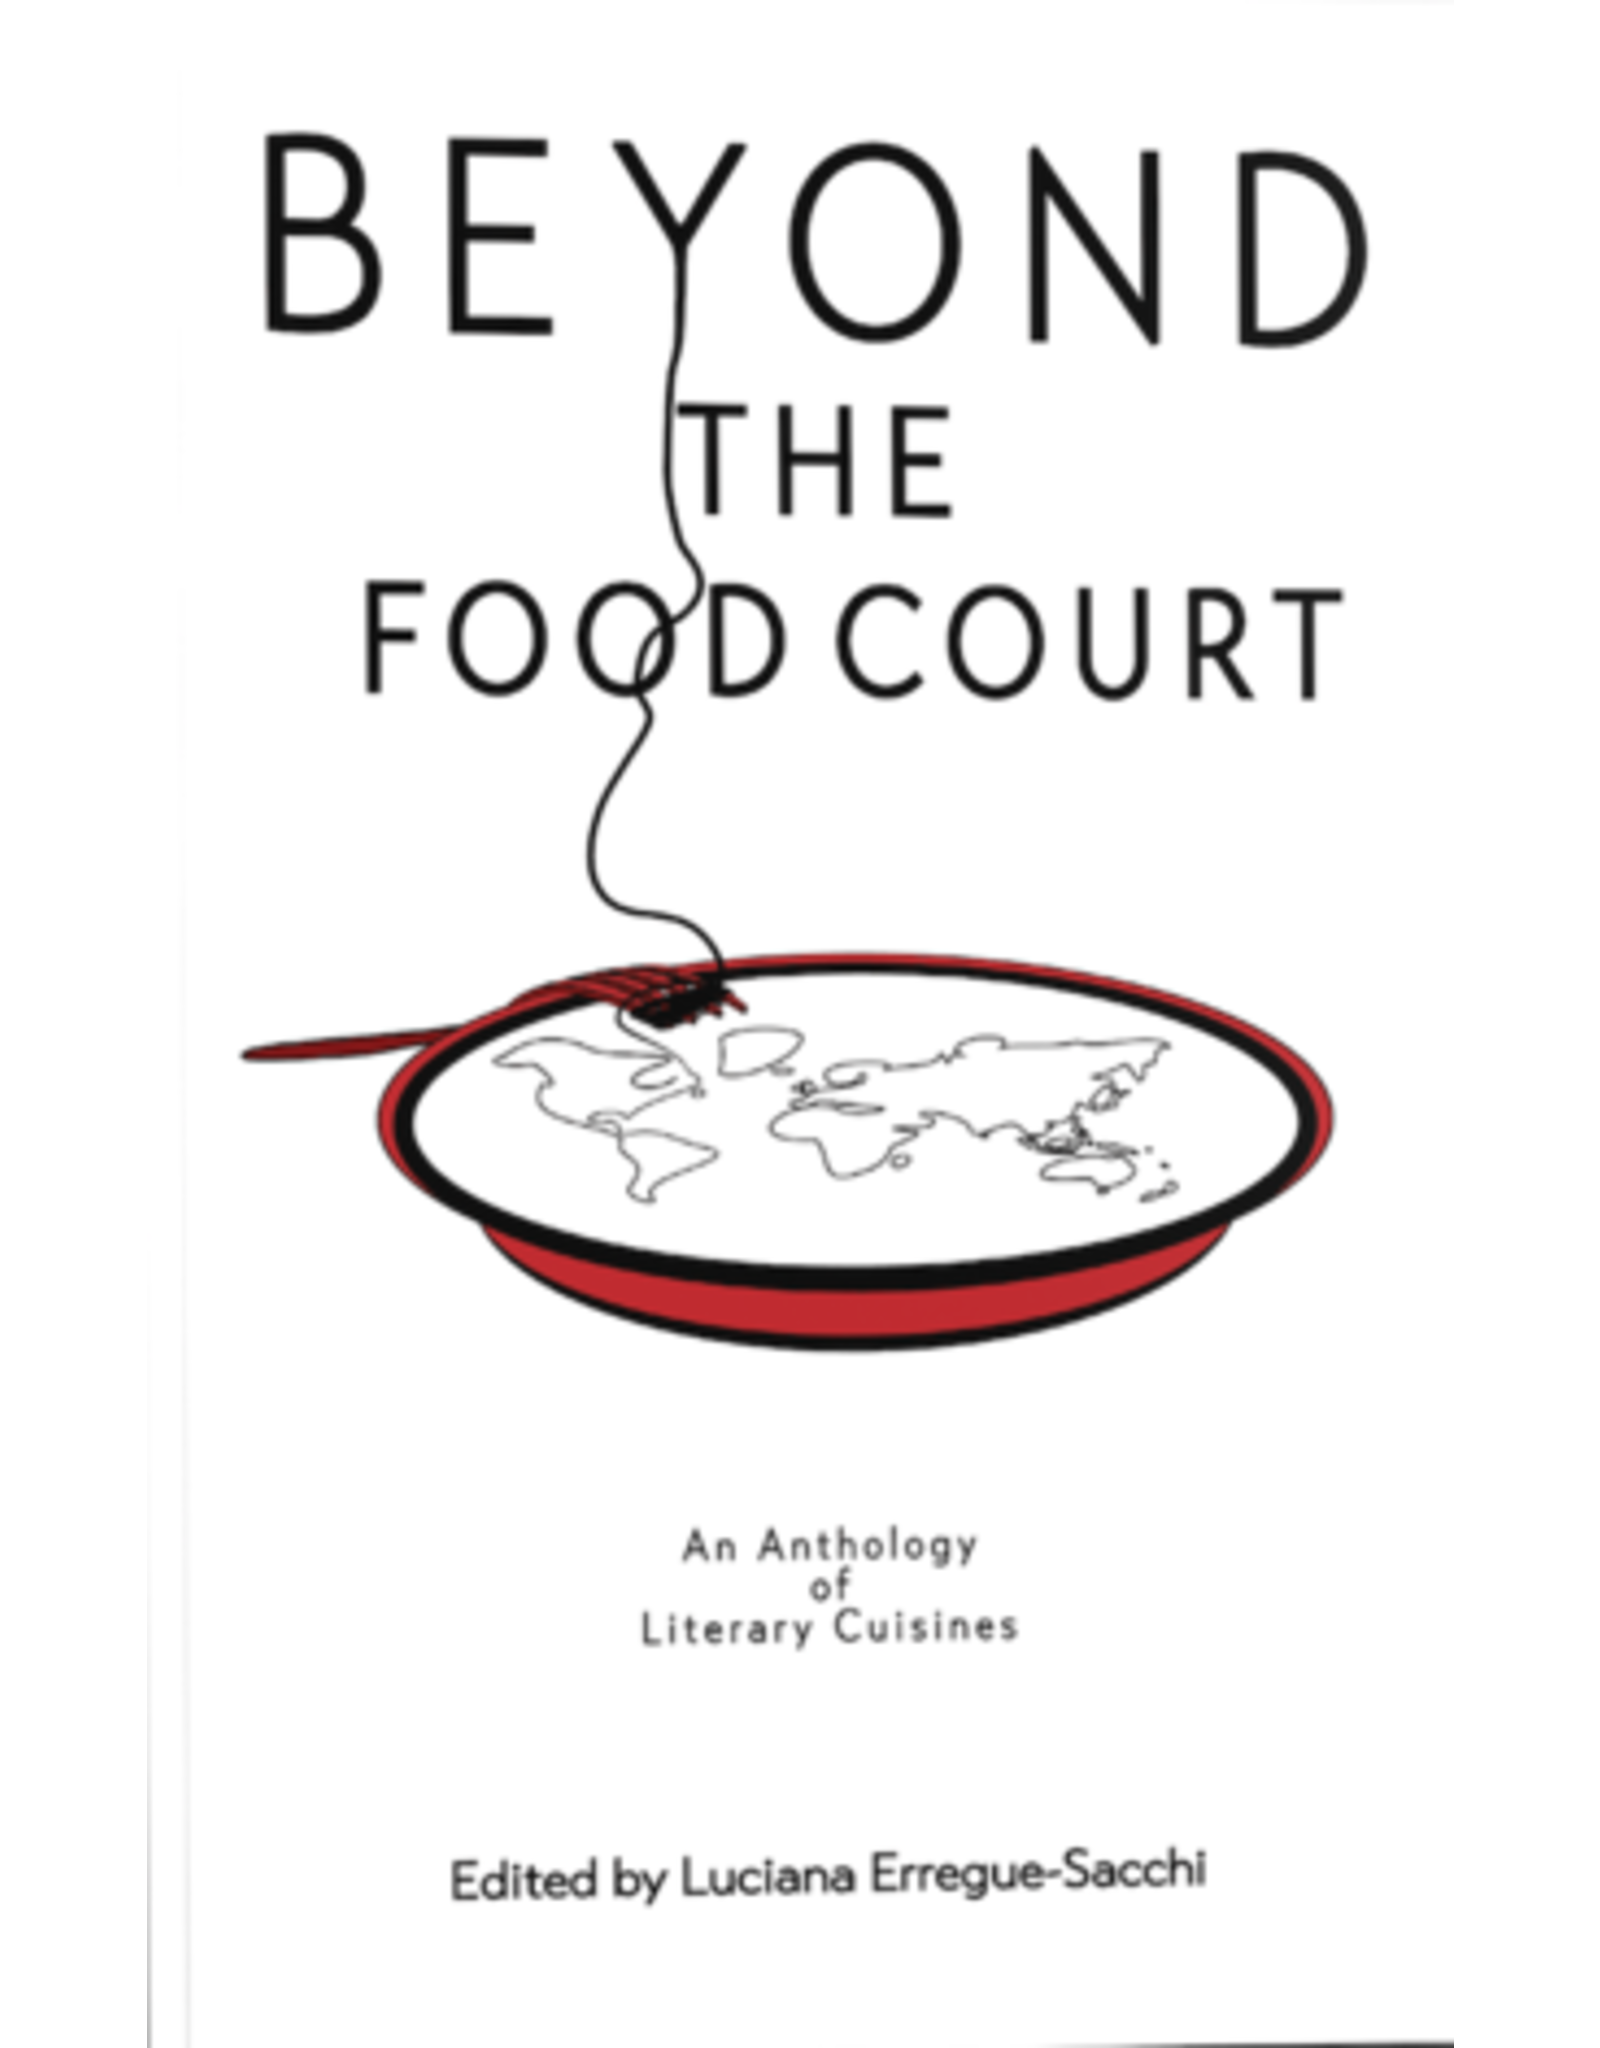 Beyond the Food Court, Ed. by Luciana Erregue-Sacchi